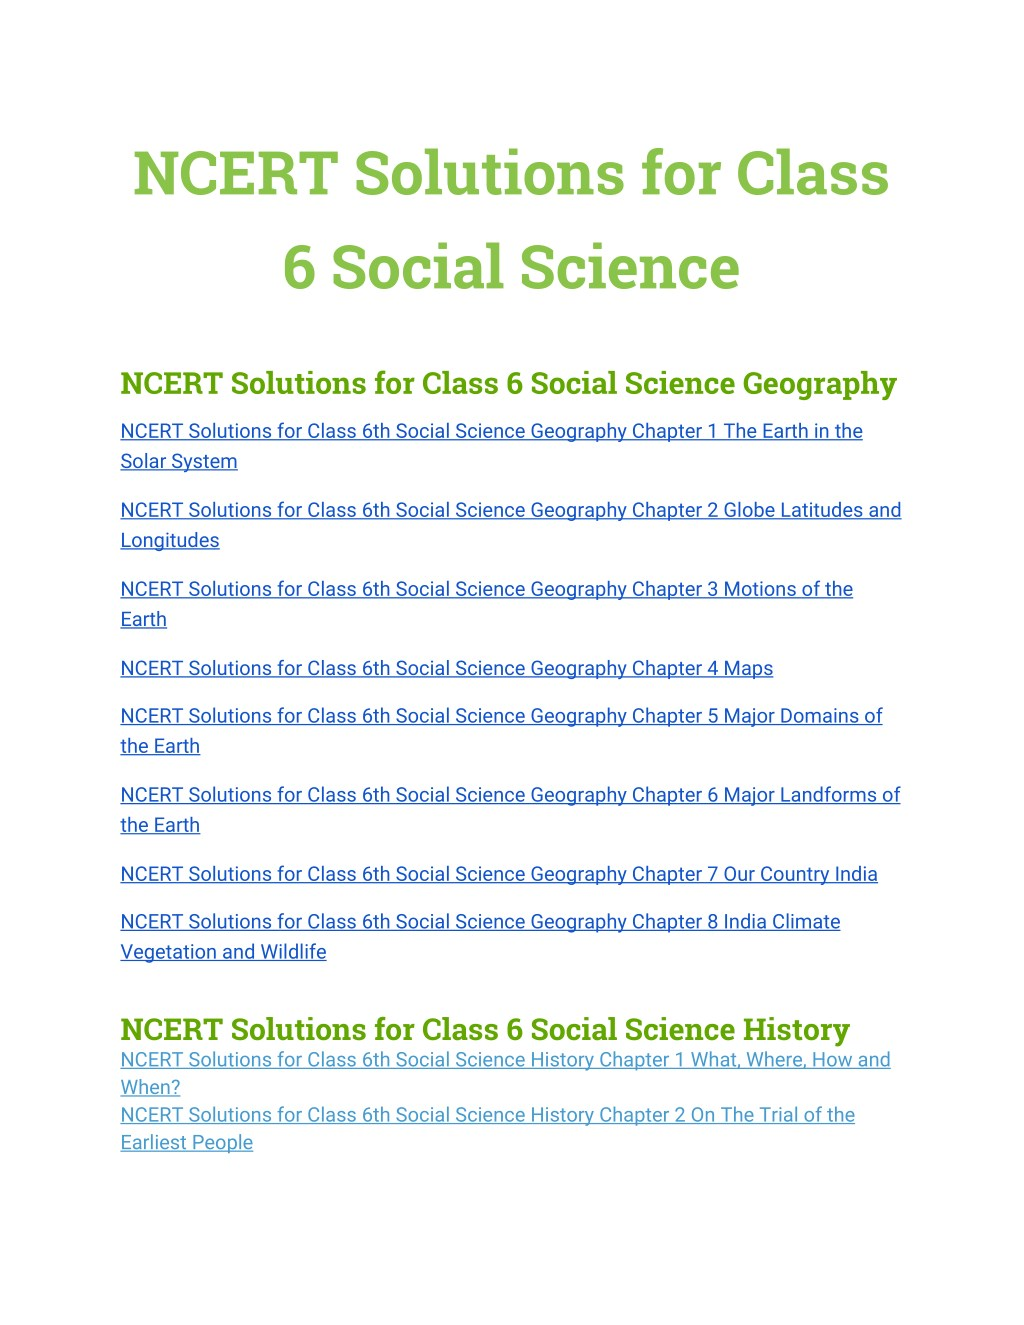 ncert solutions for class 9 social science geography chapter 2